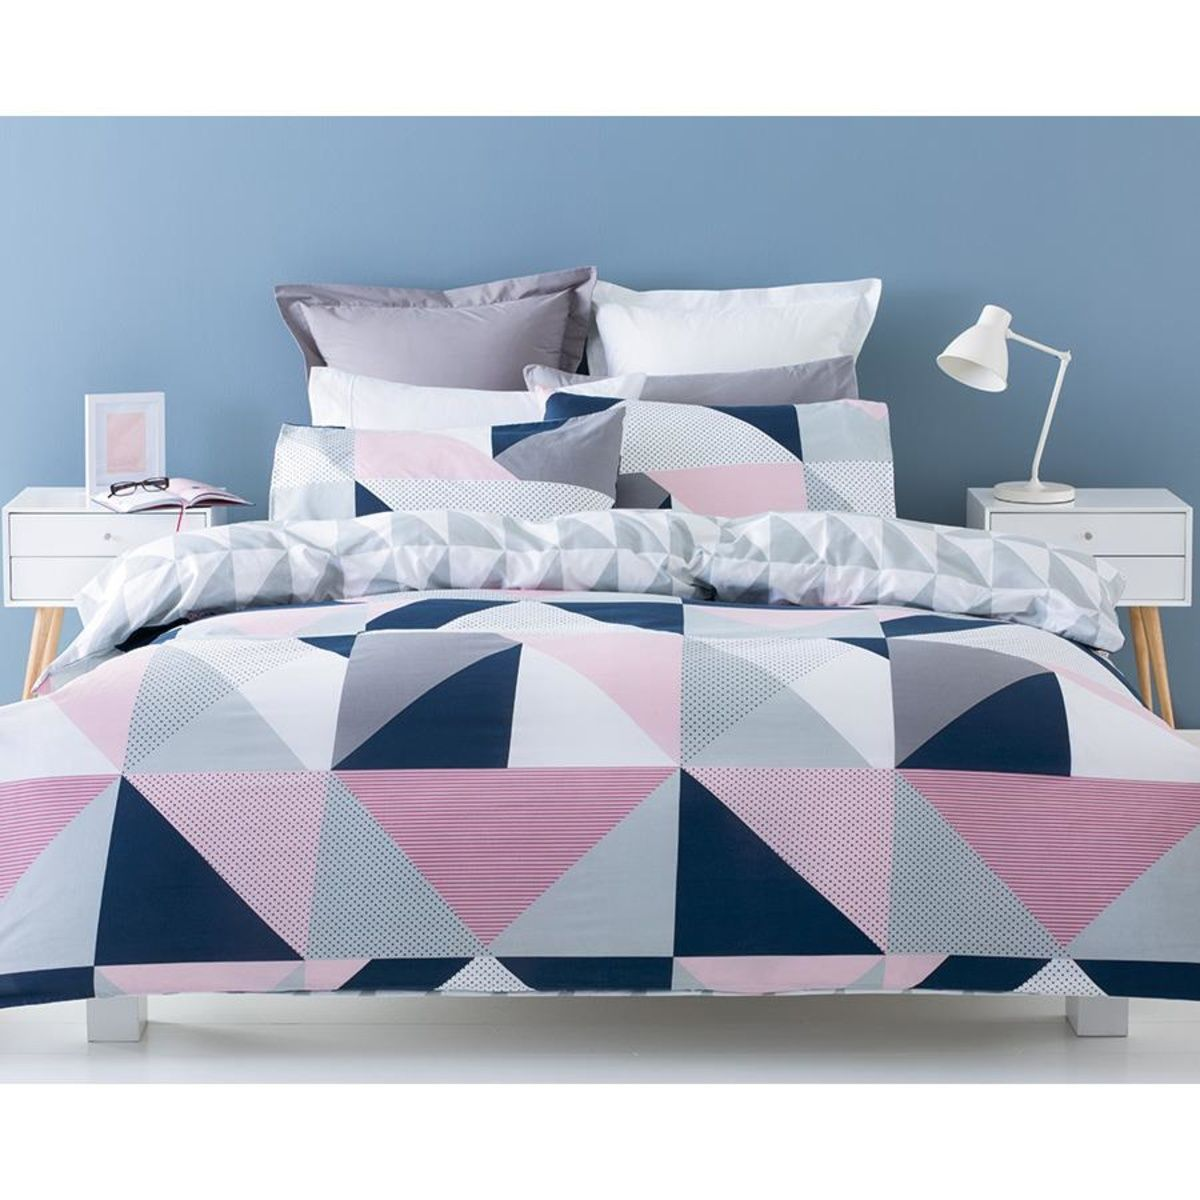 Jasper Reversible Quilt Cover Set Single Bed Kmart Quilt